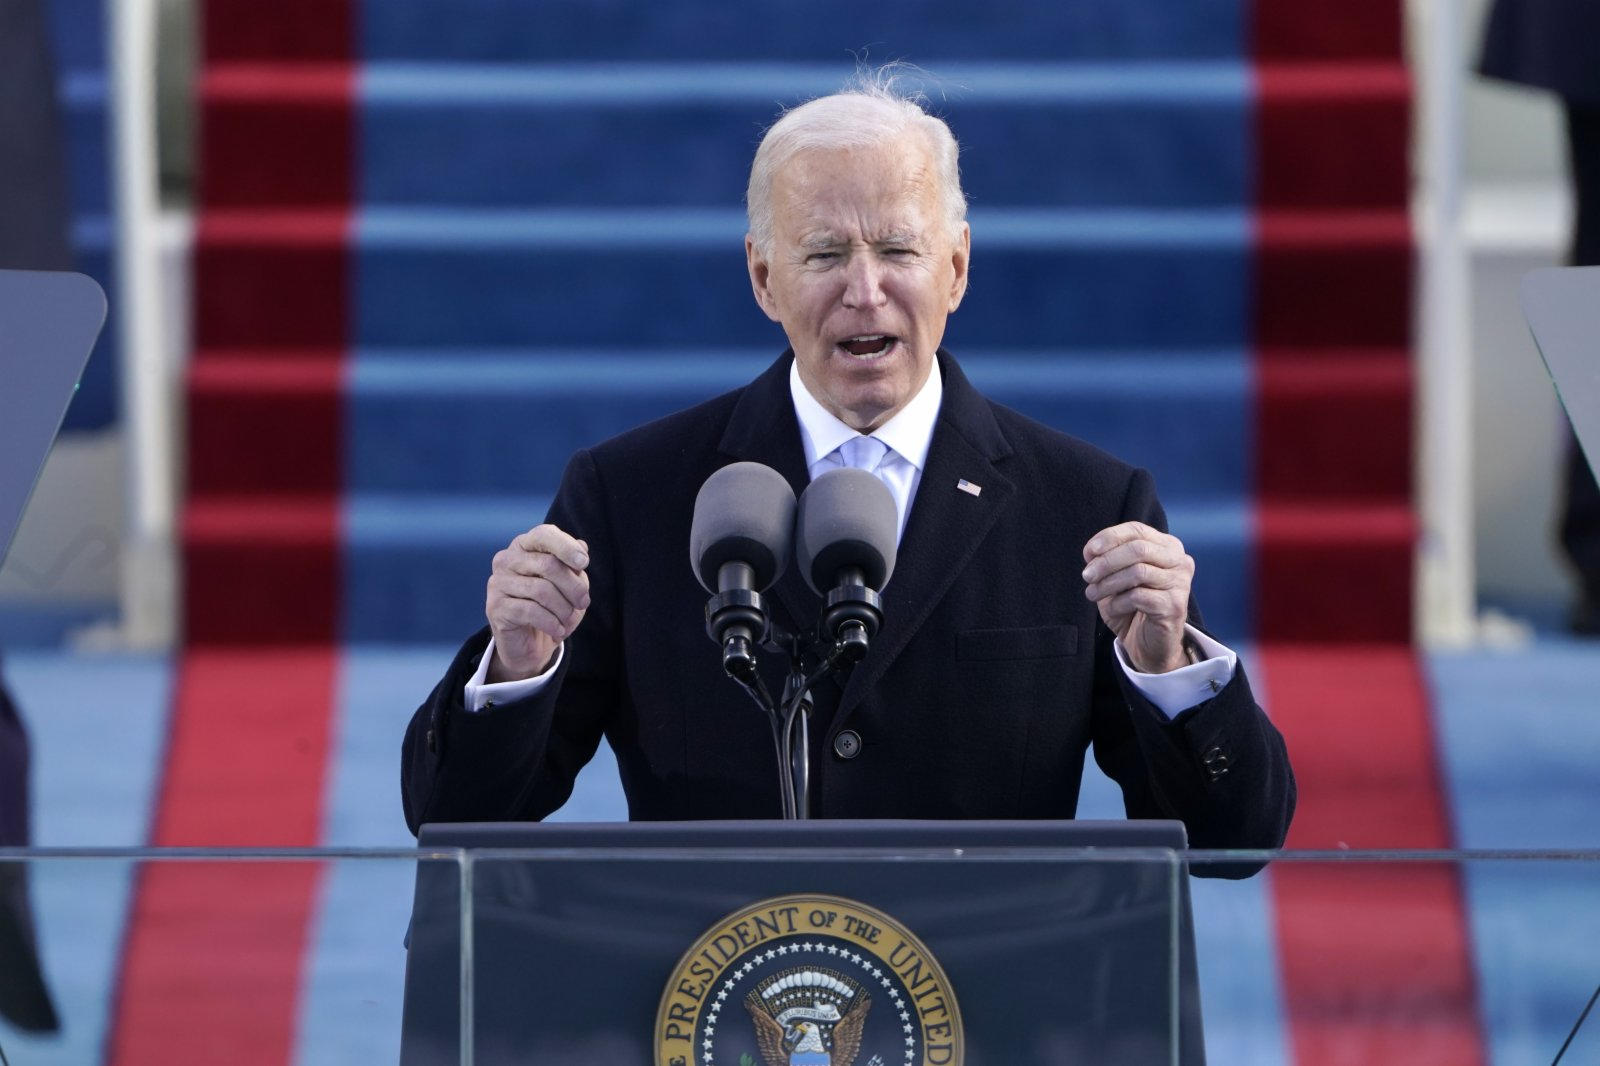 Biden asked visitors to the United States to be quarantined for seven days